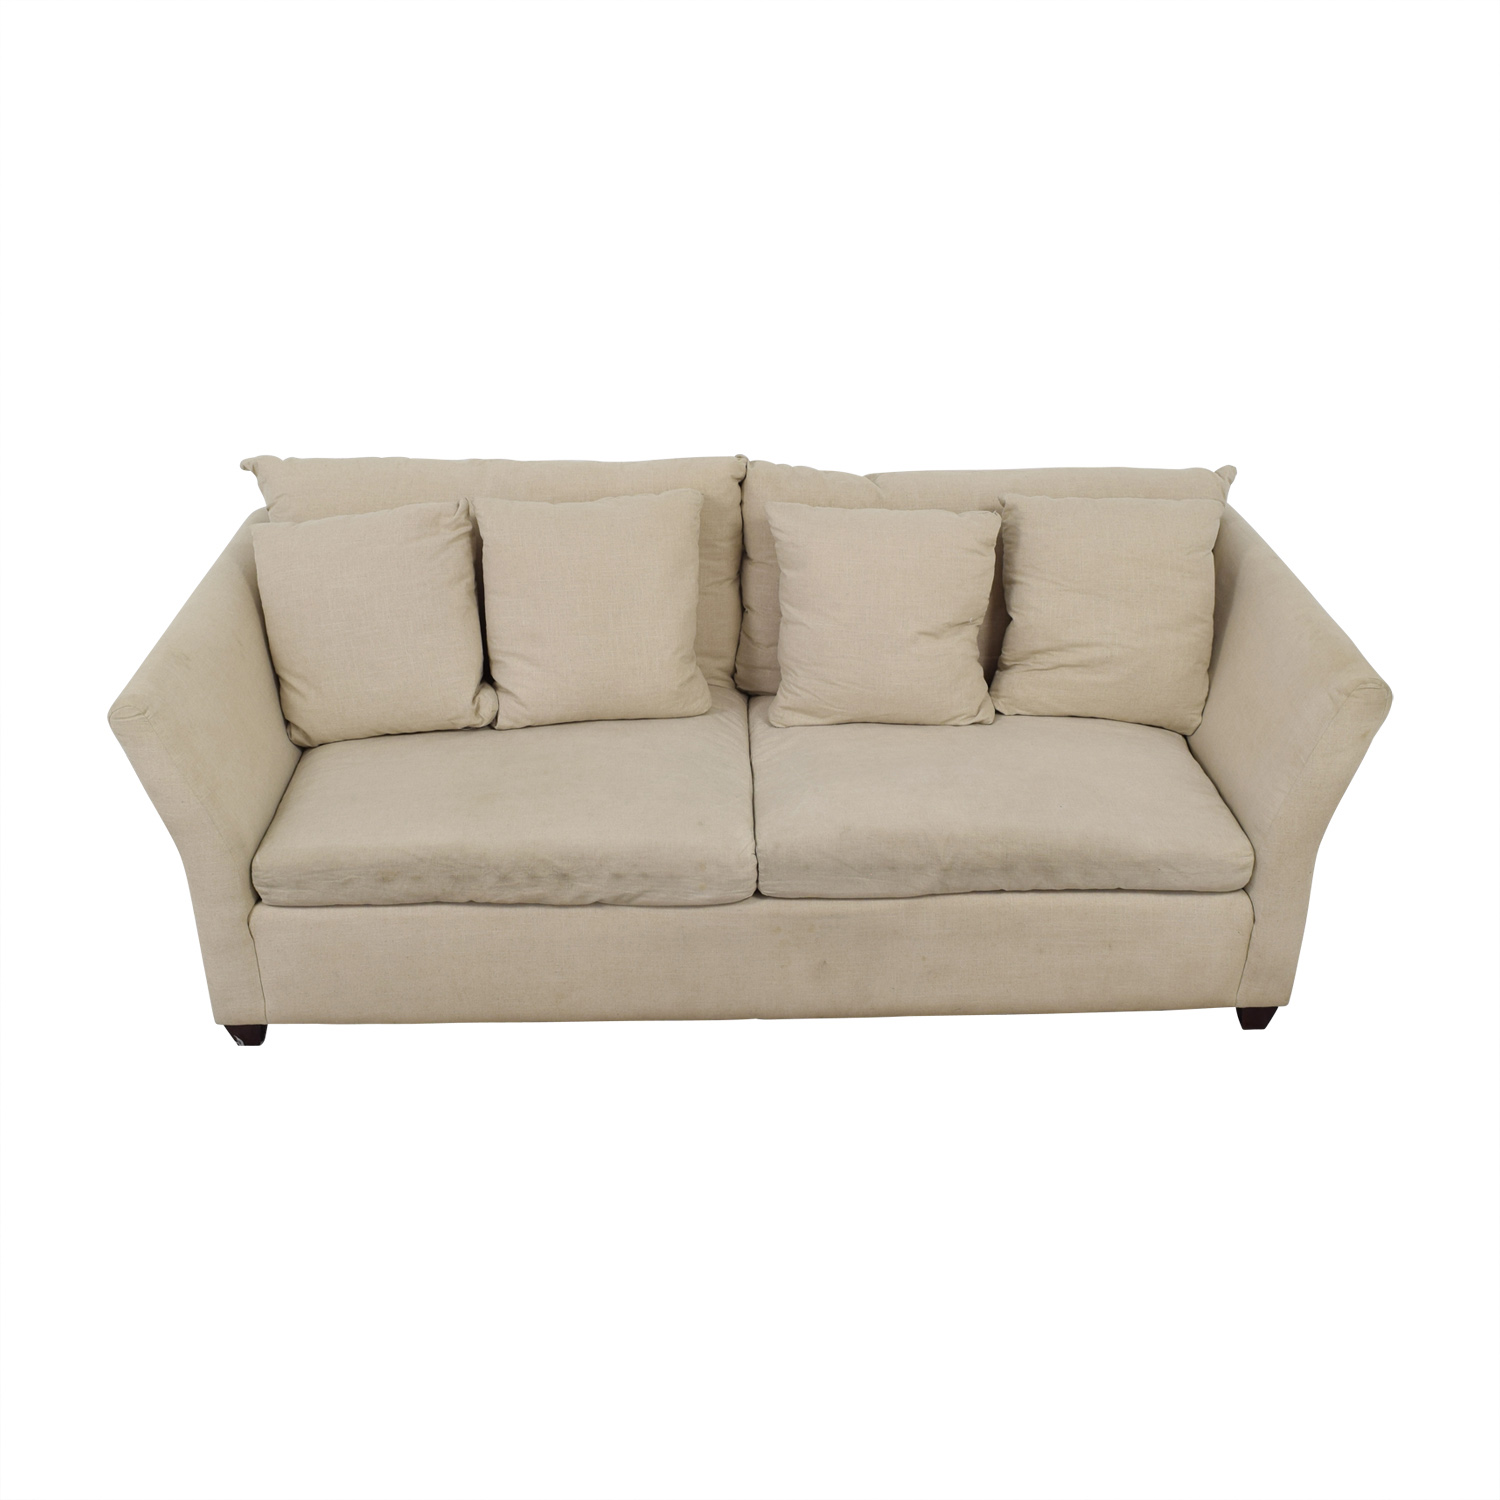 ABC Carpet & Home ABC Carpet & Home Beige Two-Cushion Sofa dimensions